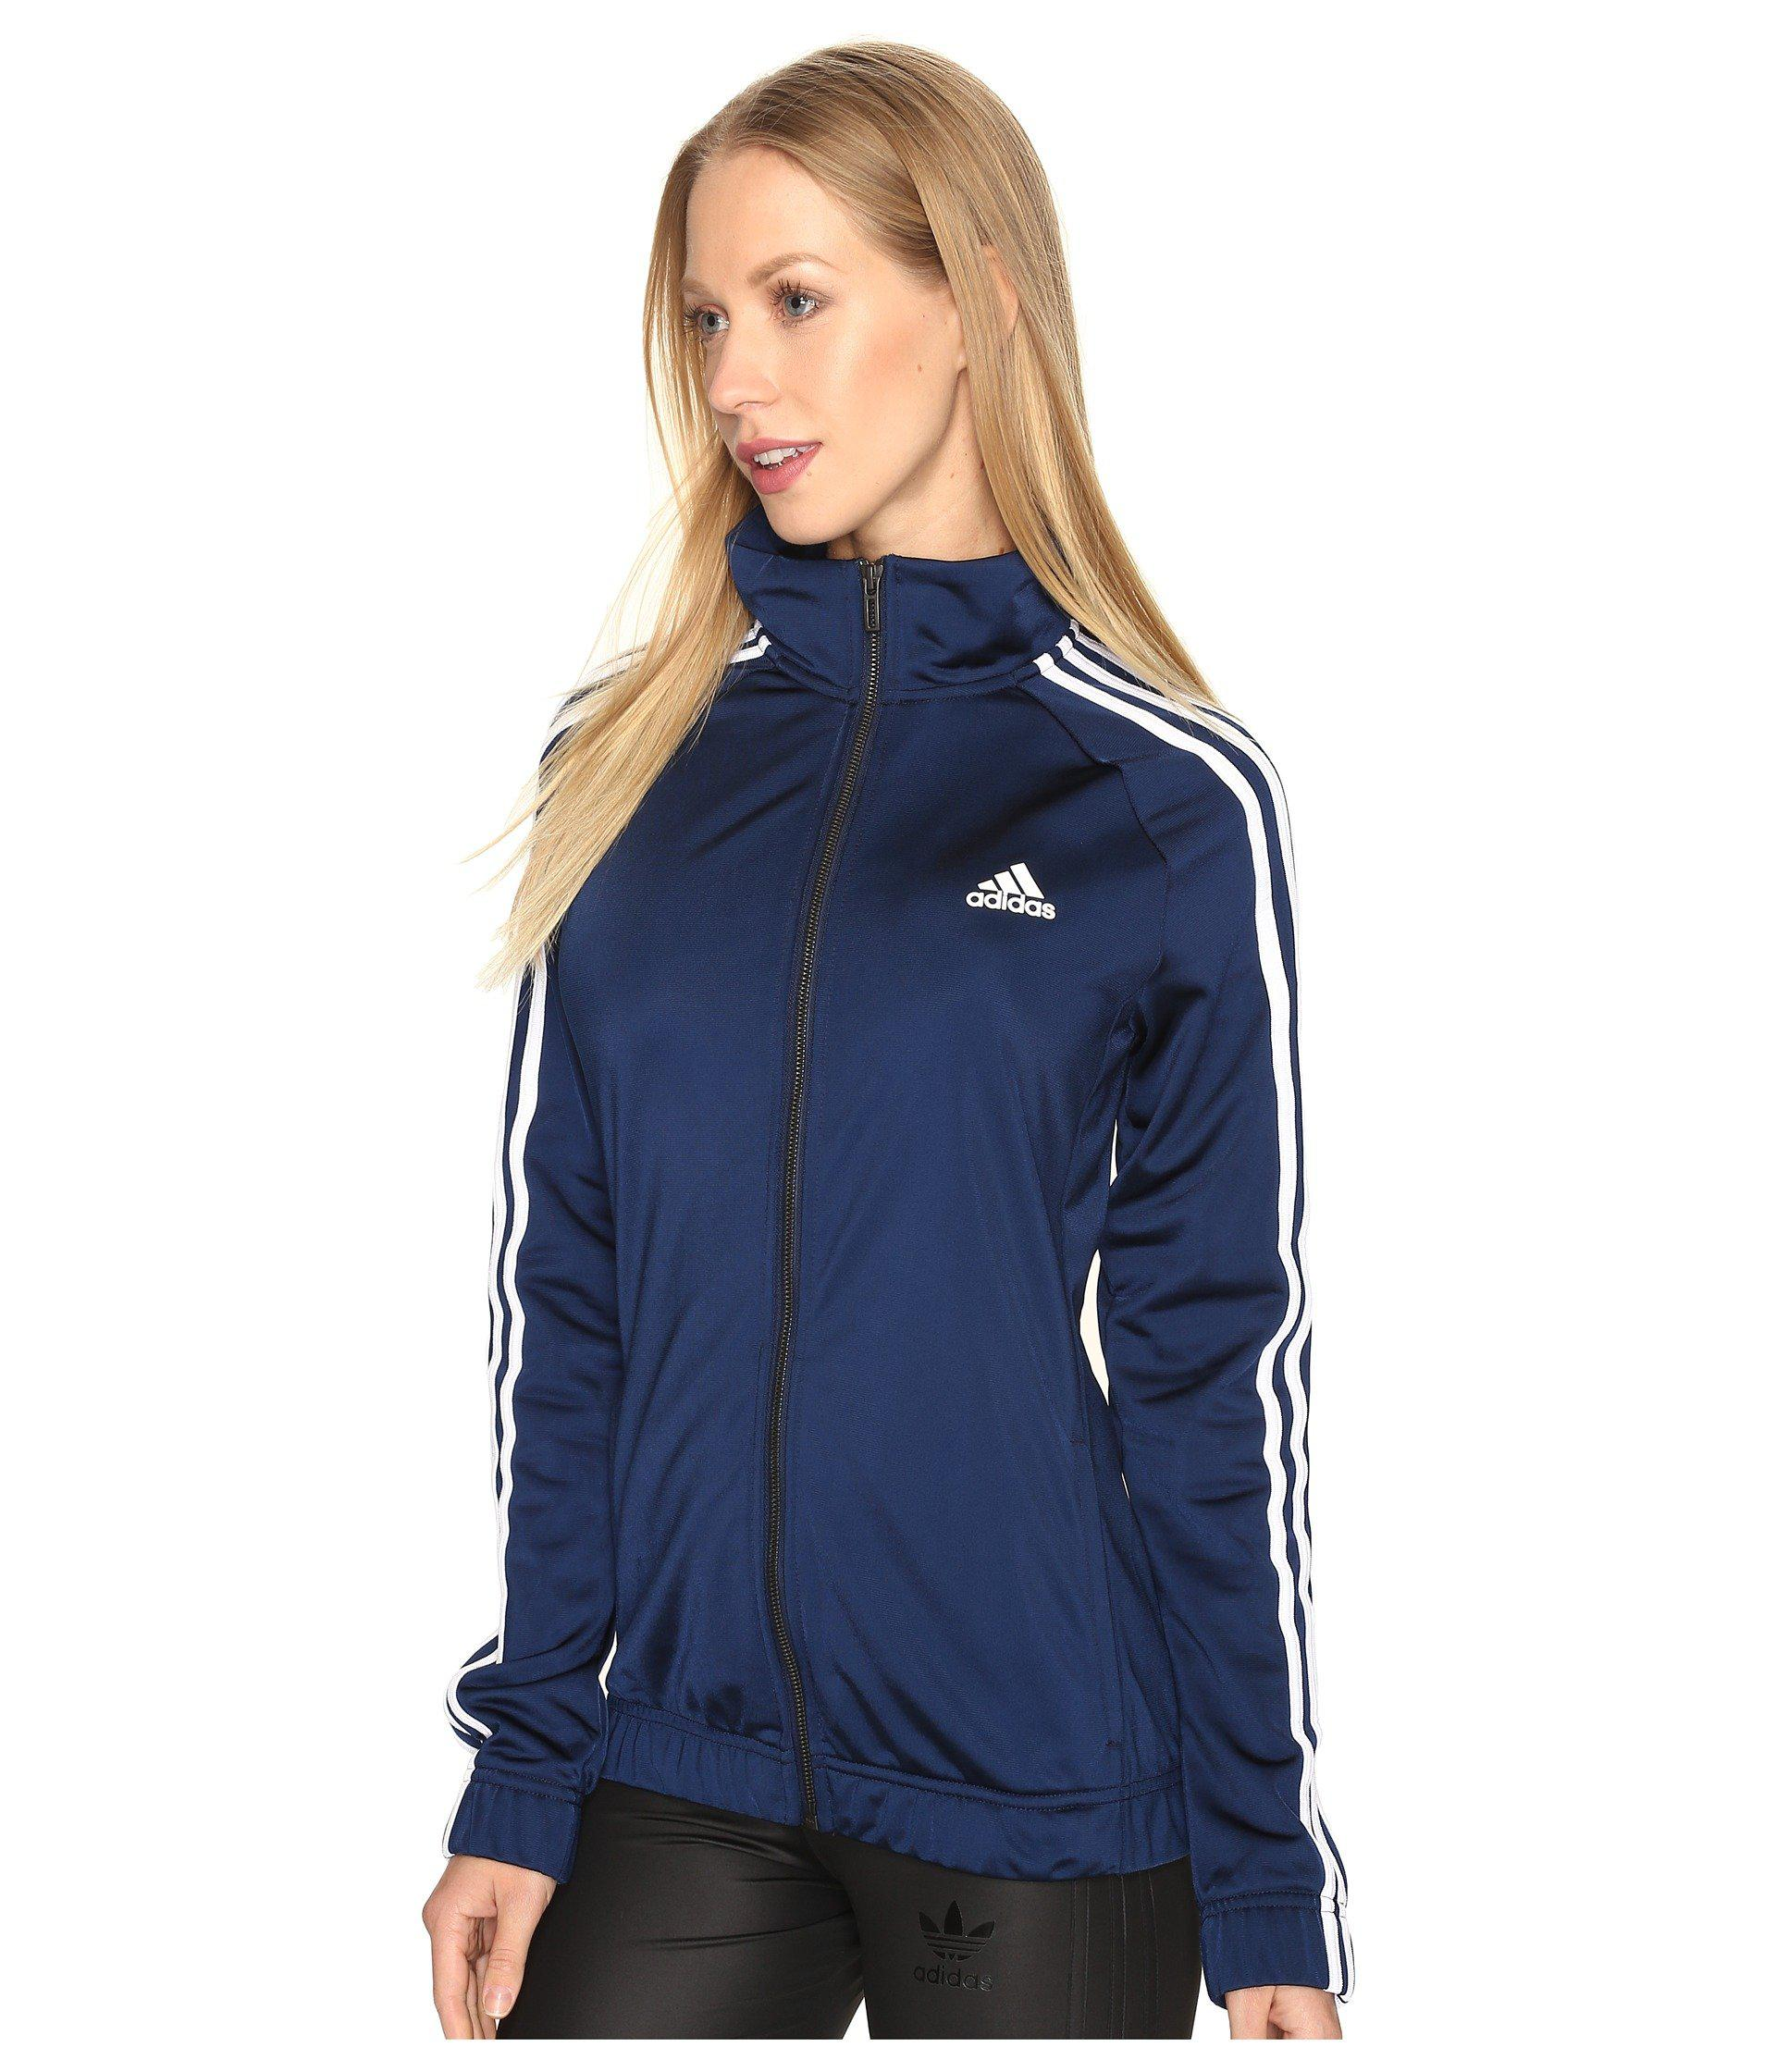 6290bd789 Lyst - adidas Designed-2-move Track Top in Blue